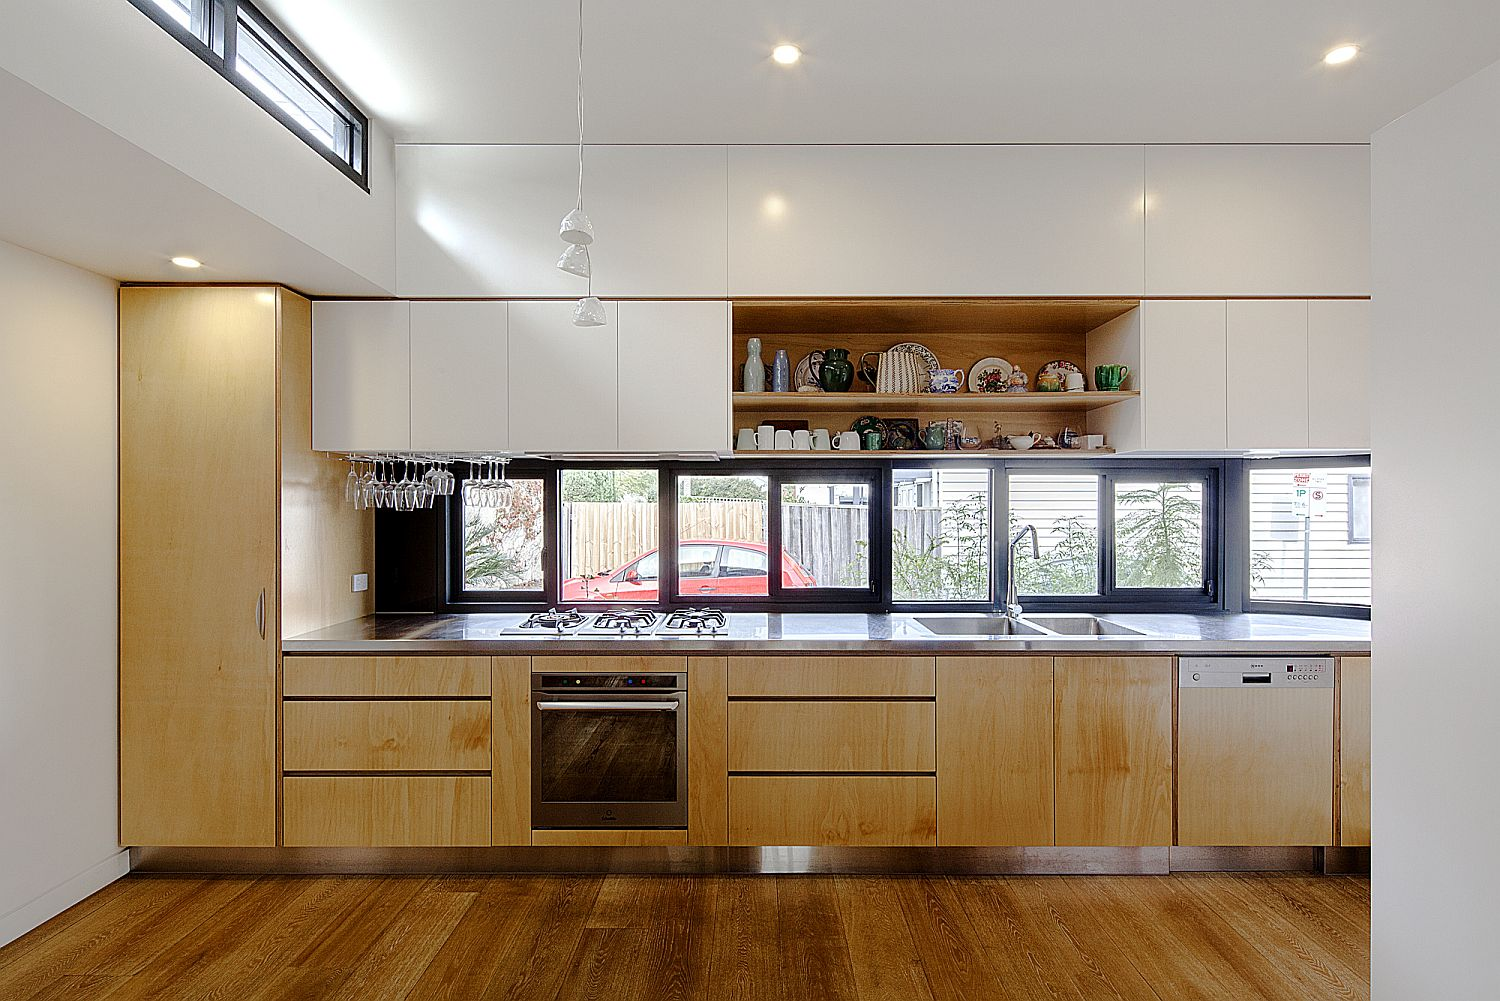 Wood and white modern kitchen with window above the kitchen counter